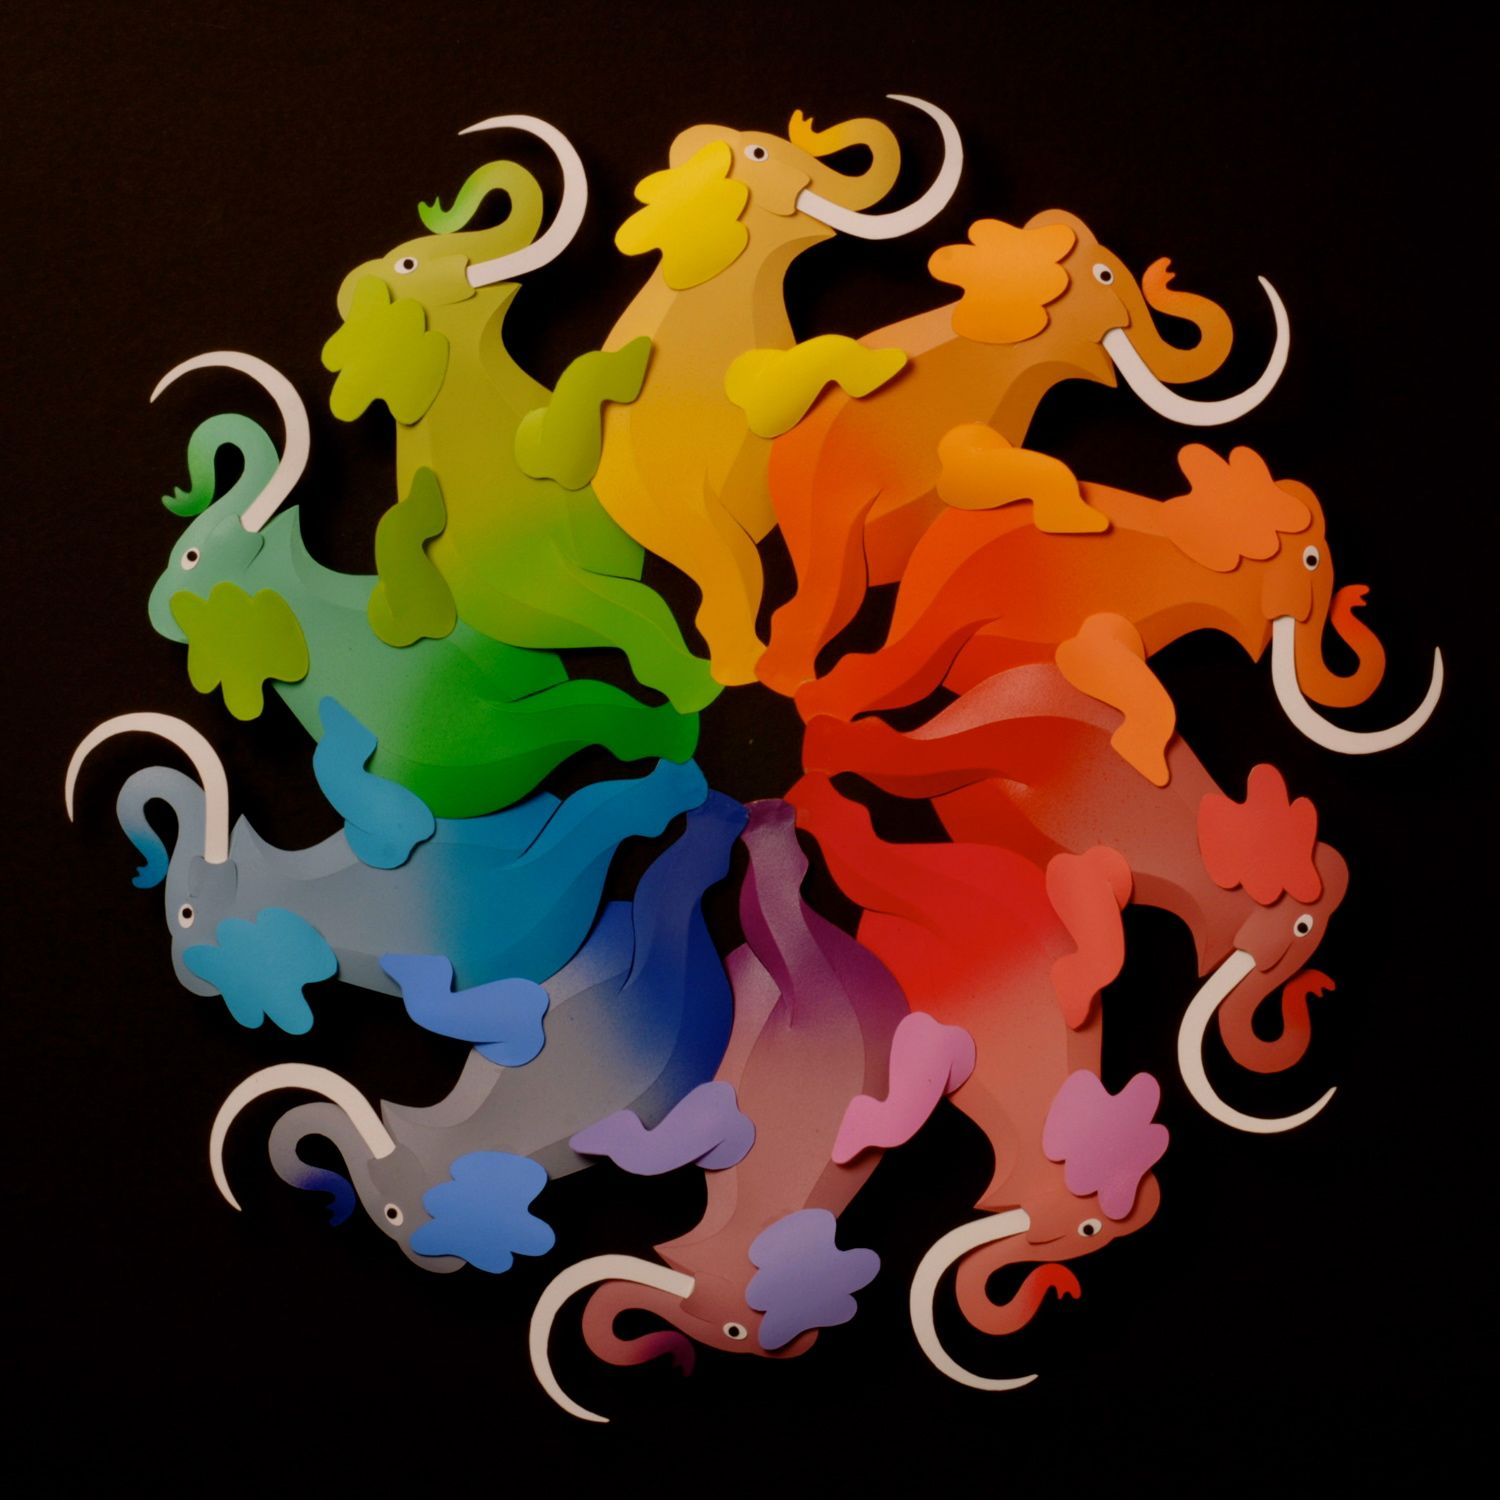 Artwork Leo Monahan Elephant Color Wheel Paper Sculpture Image Courtesy Of The Artist